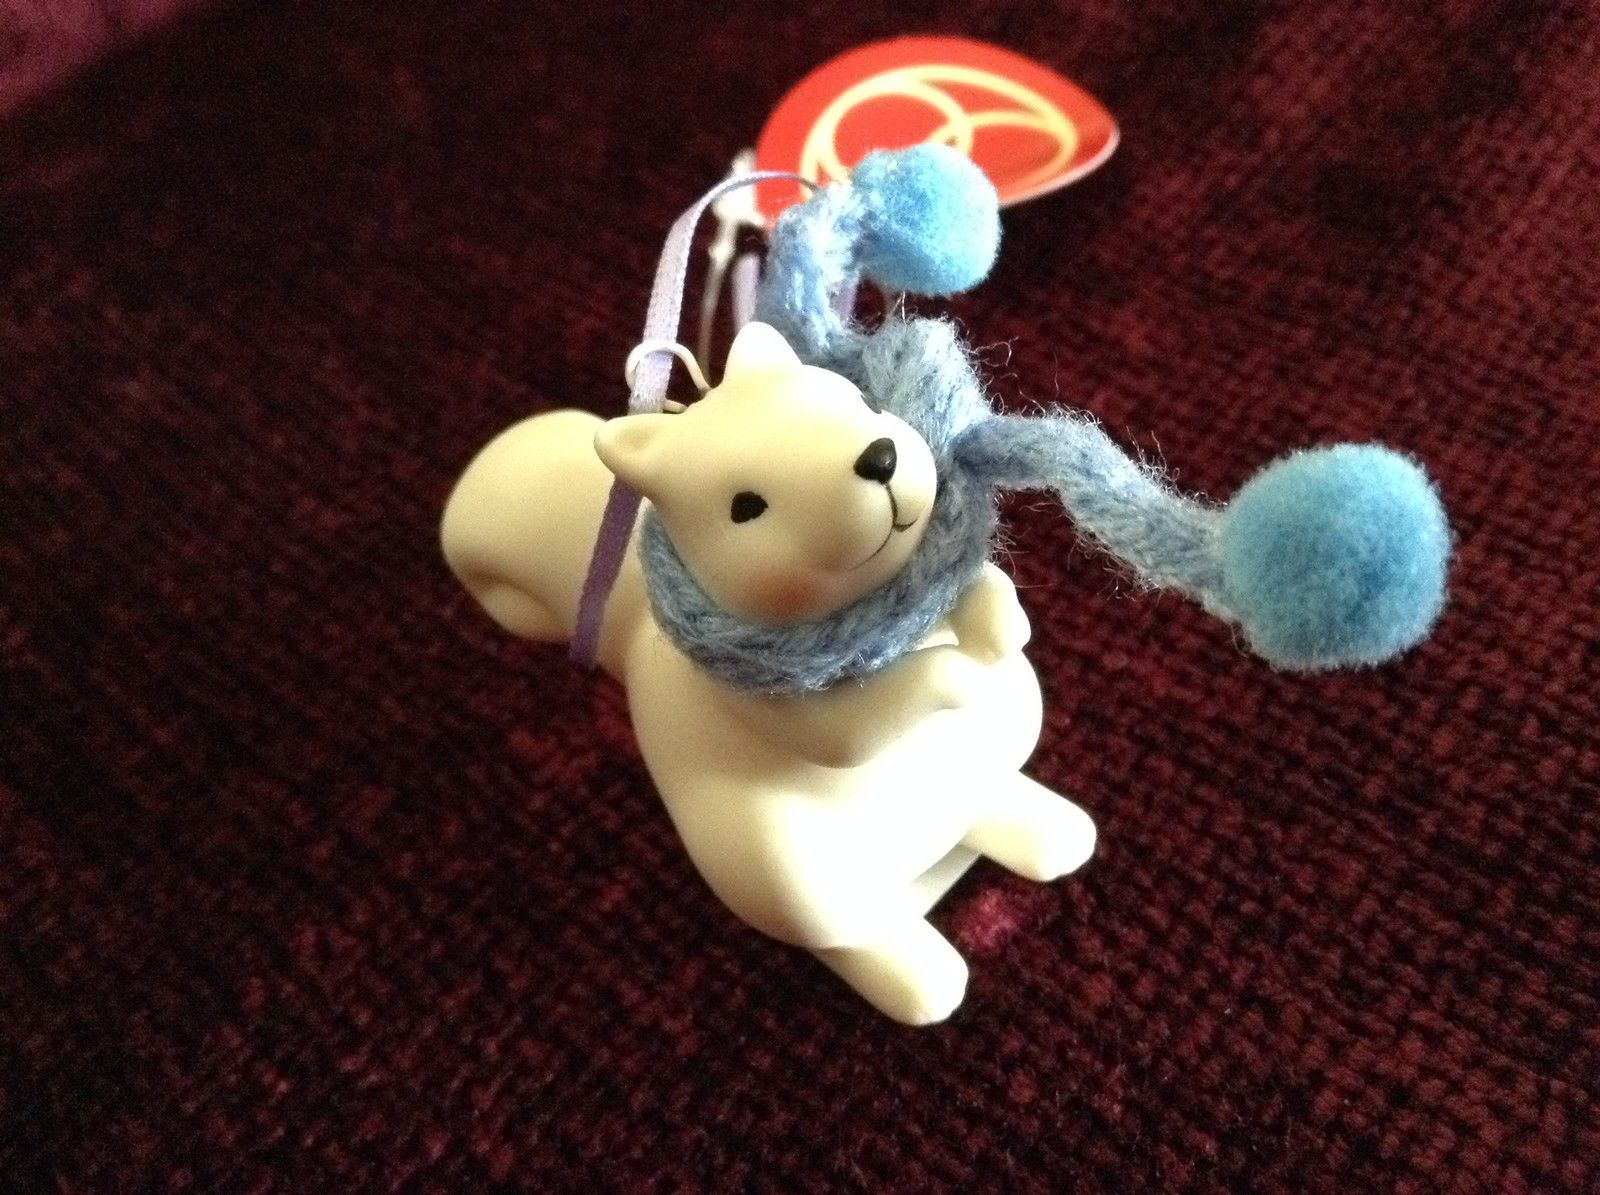 Small Porcelain Squirrel Figurines Different Colored Scarves Sold Separately